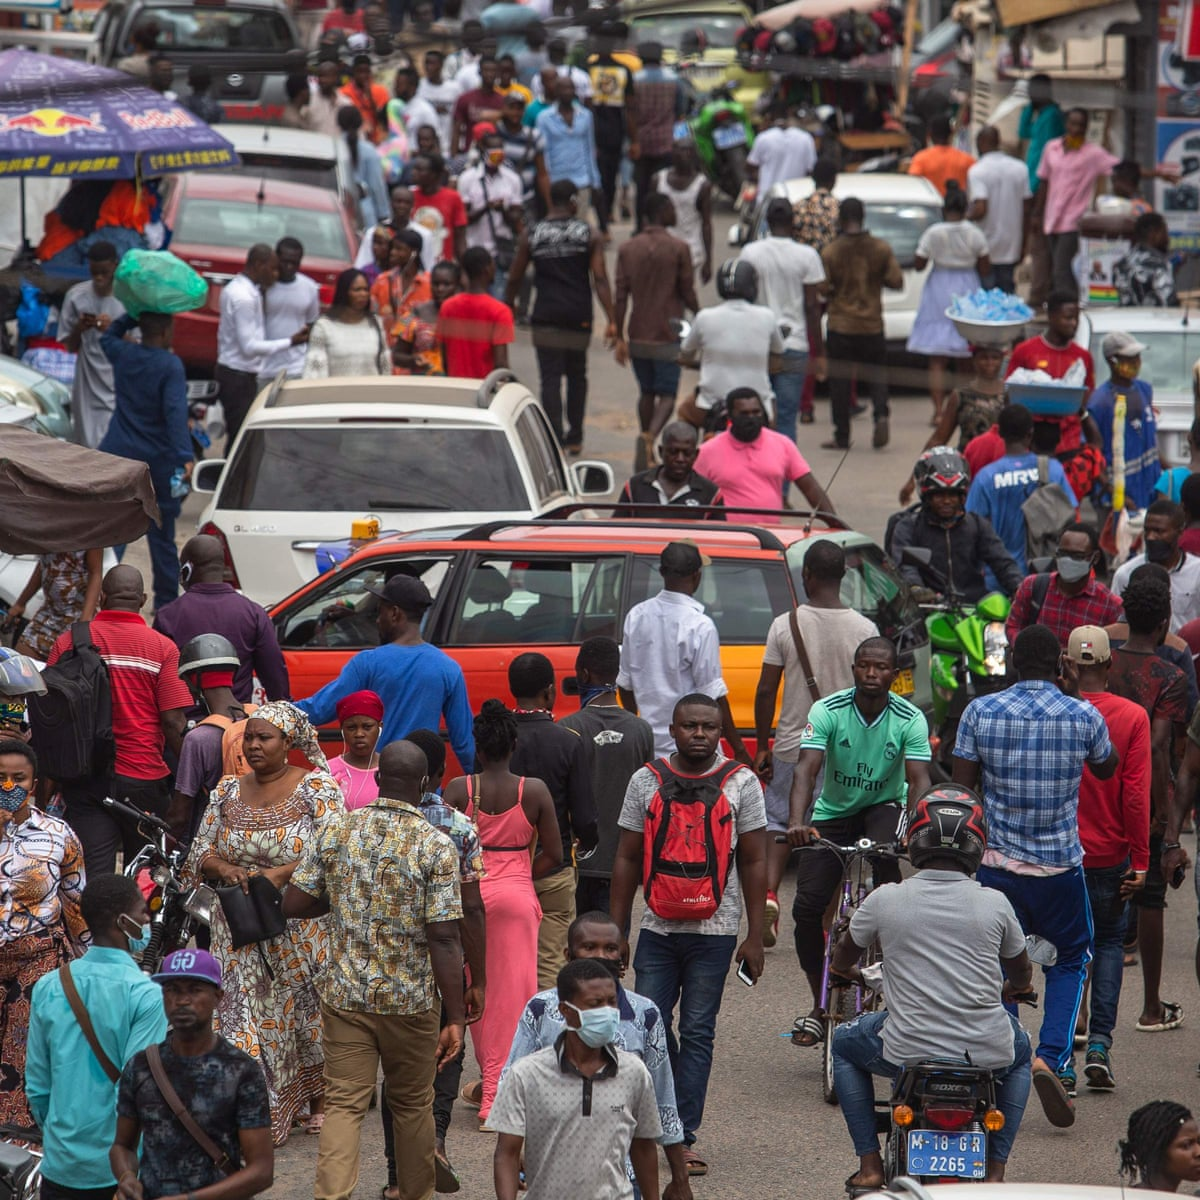 Easing of lockdown a relief to Ghana's poor – despite fears it is premature    Global development   The Guardian